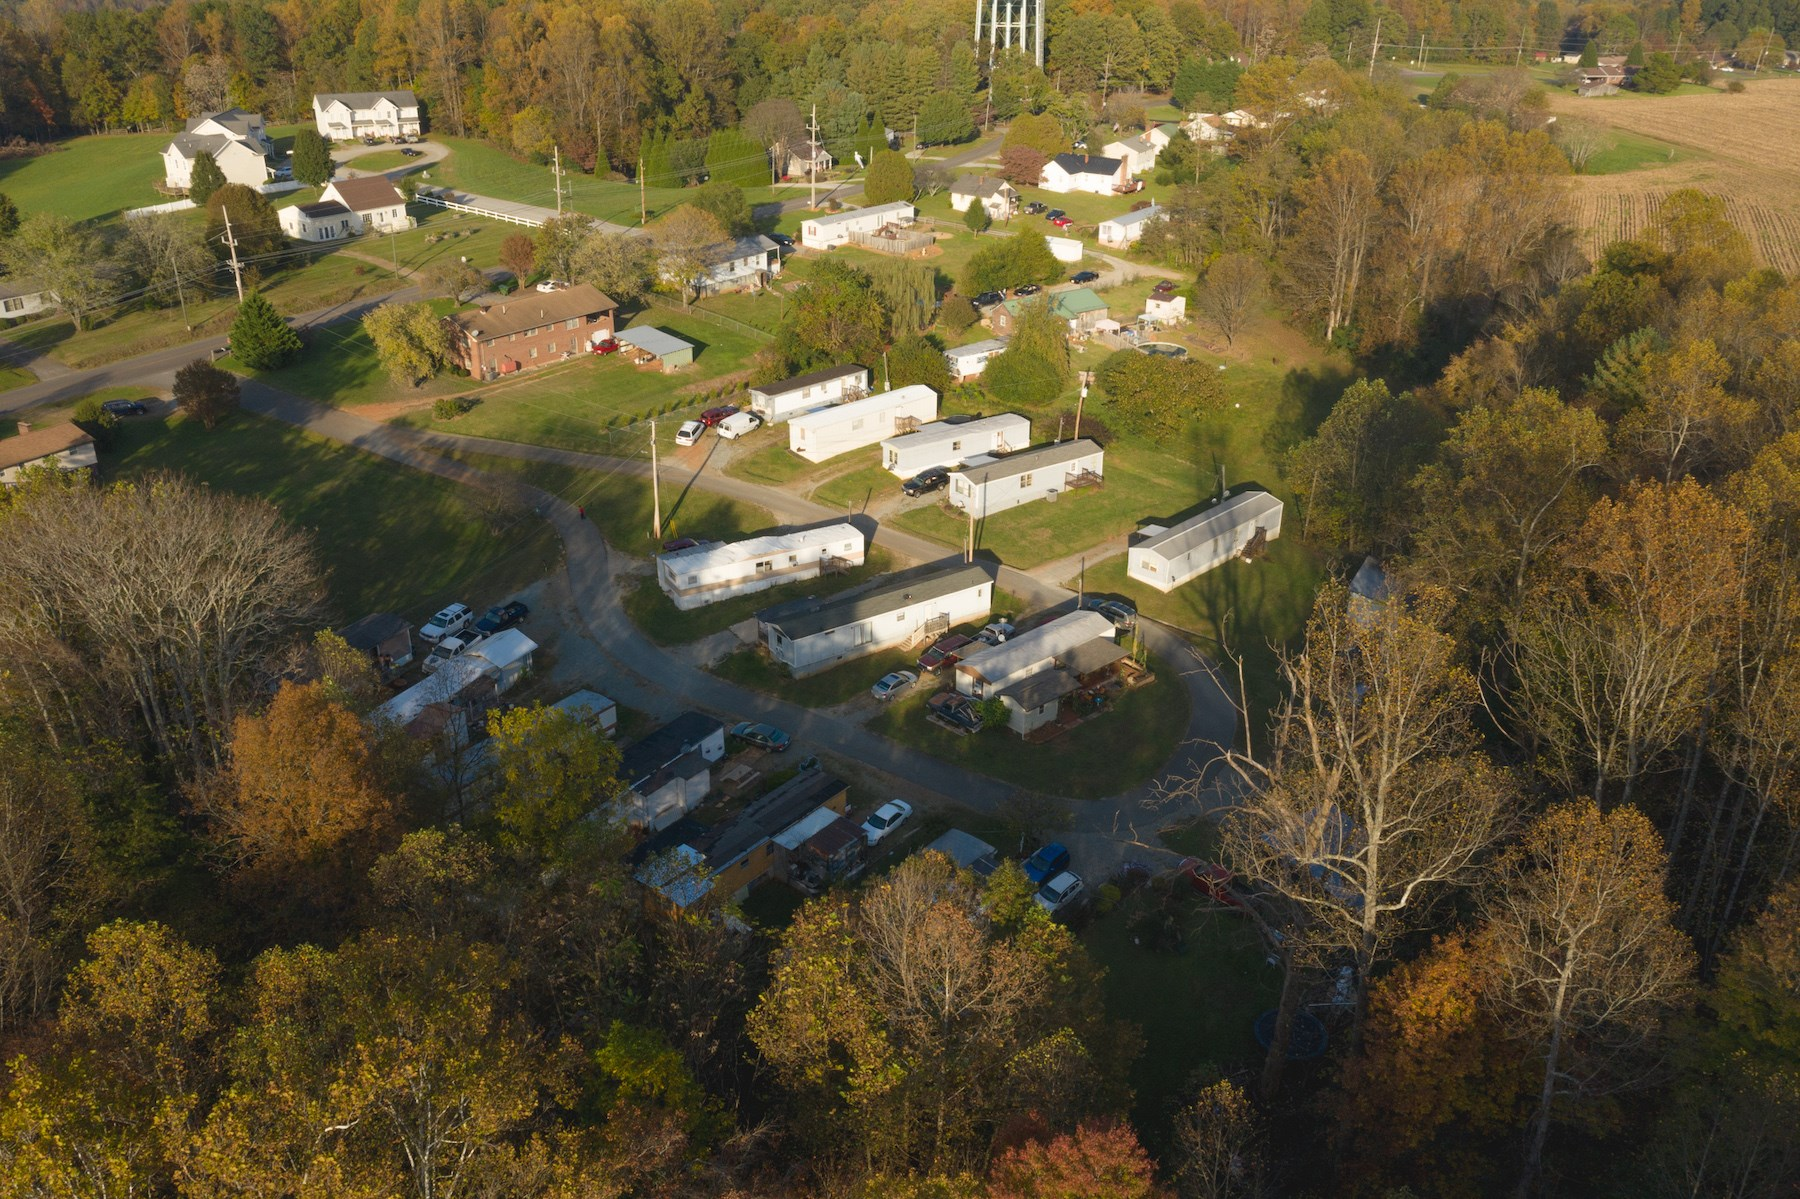 Investment Property for Sale in Rocky Mount VA!